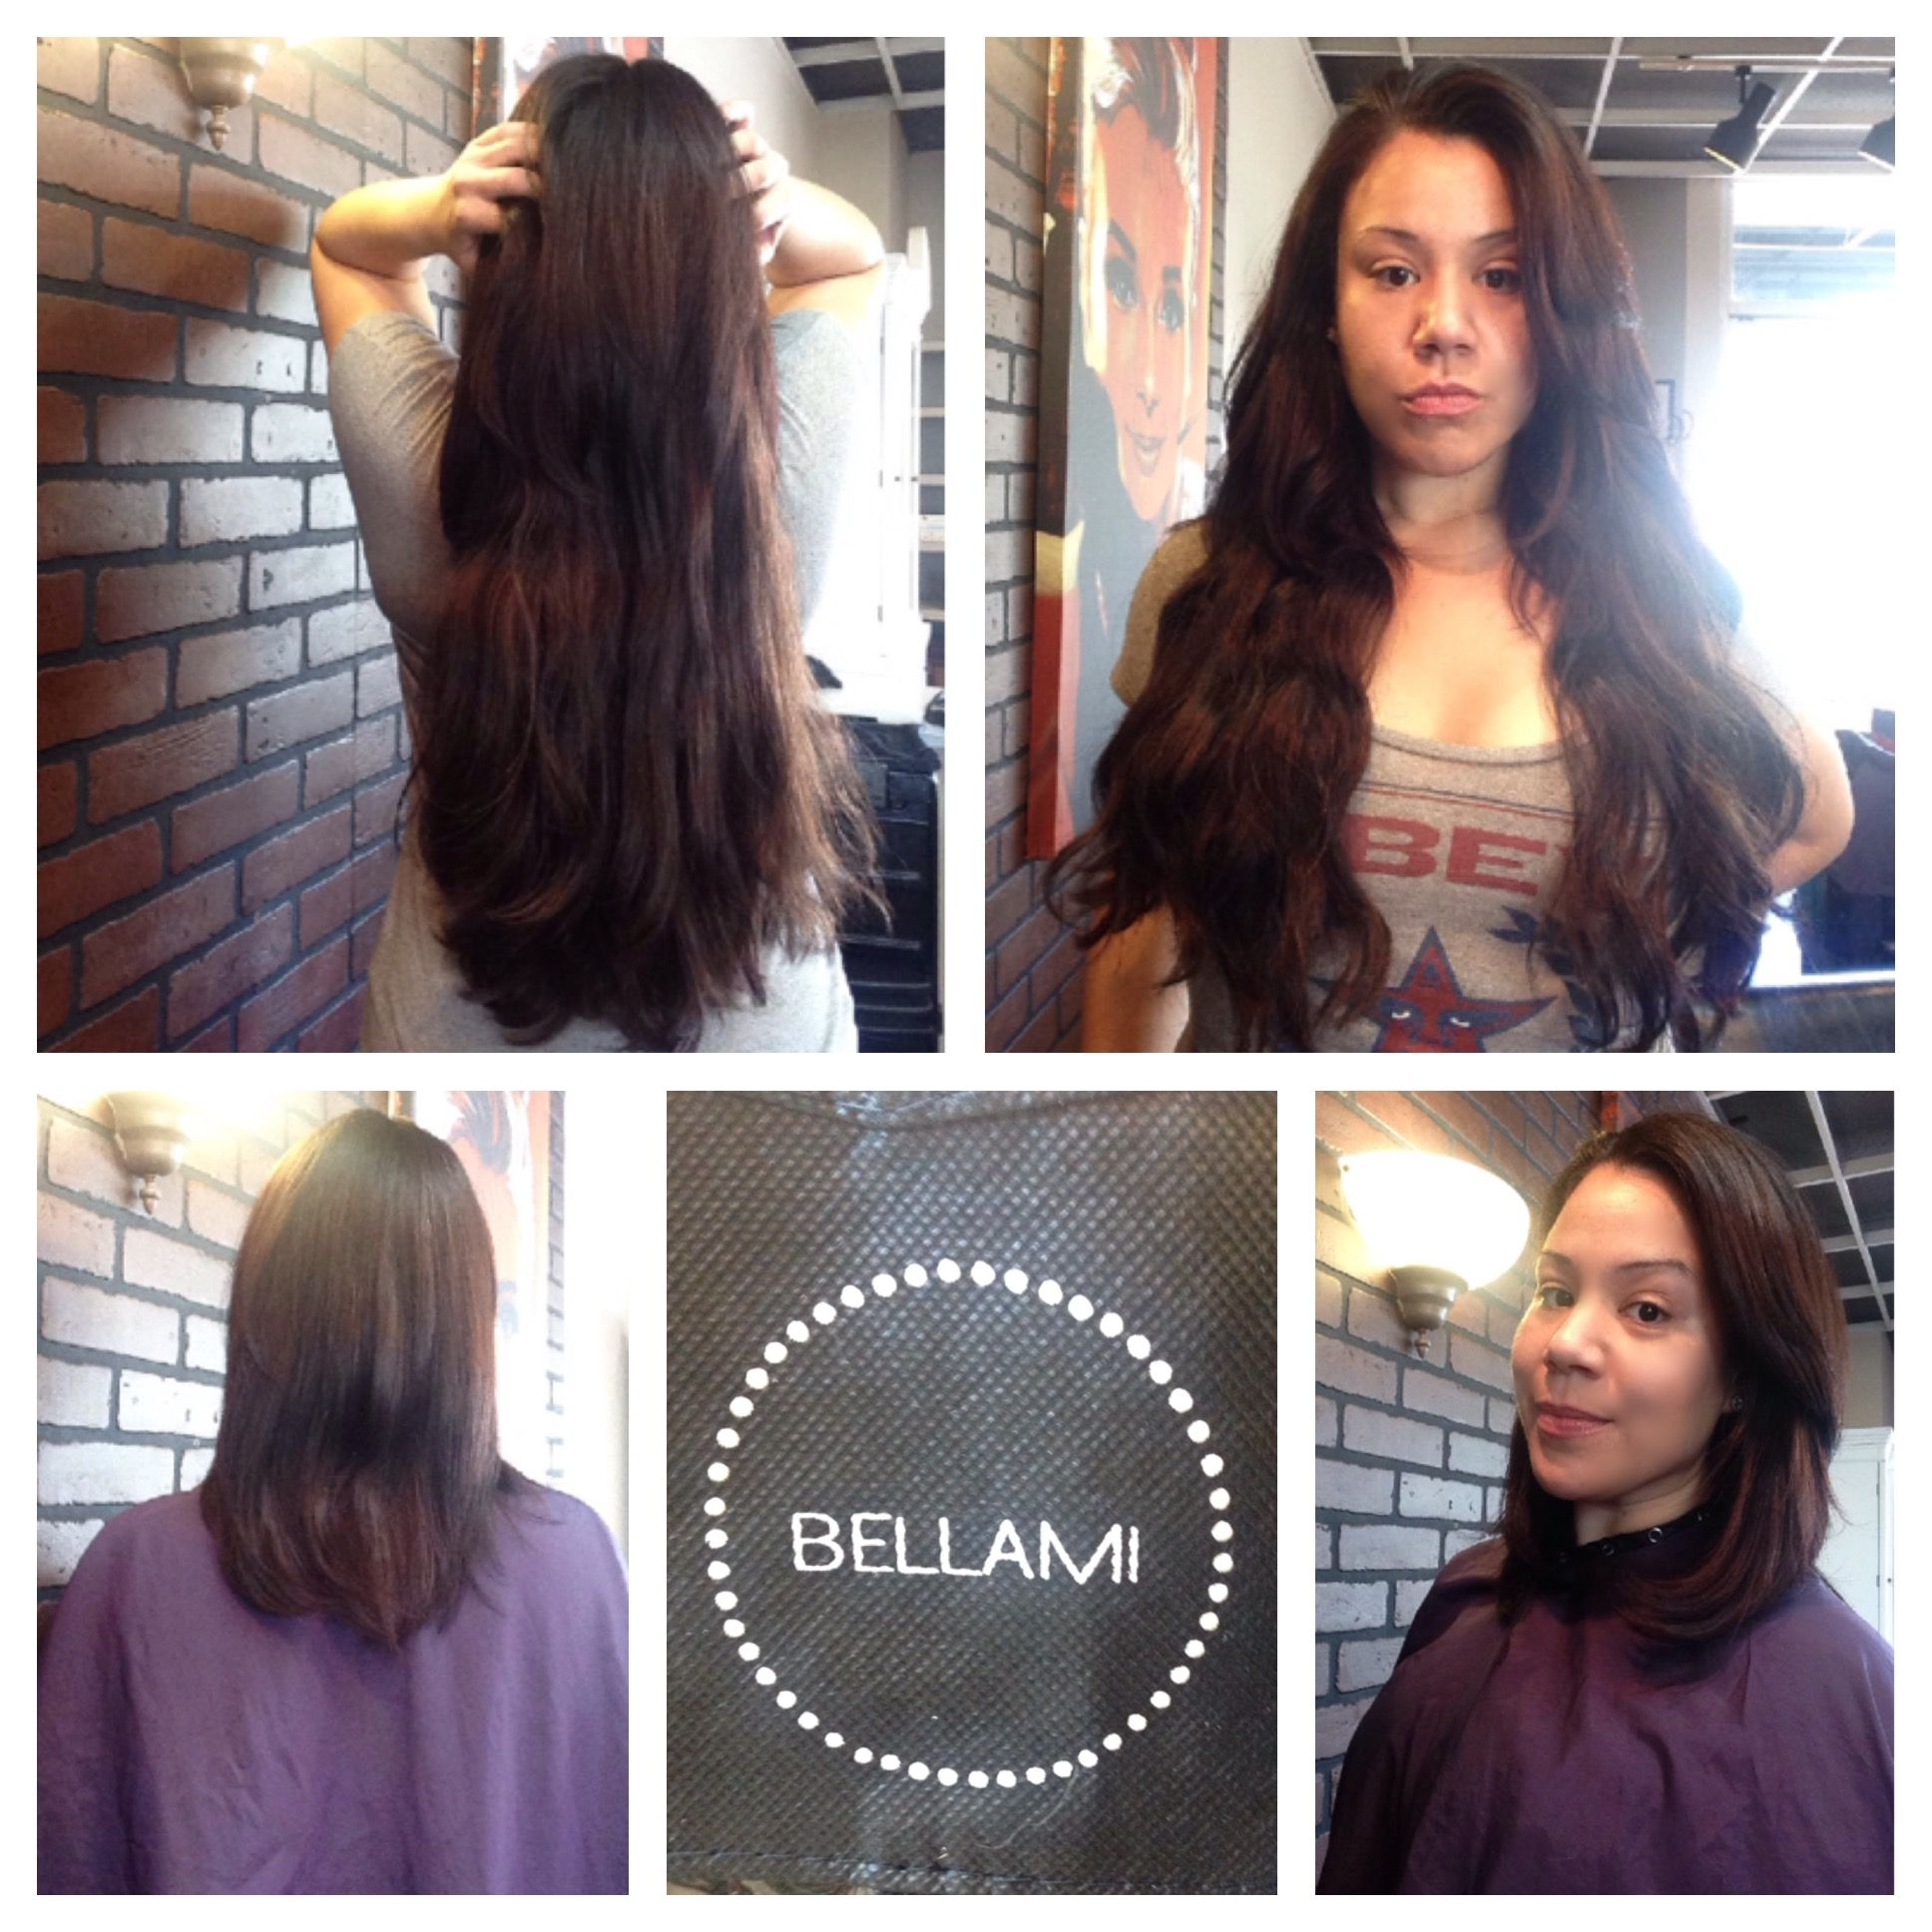 Clip in Bellami hair extensions Custom cut and colored by Veronica ... f1574503b8